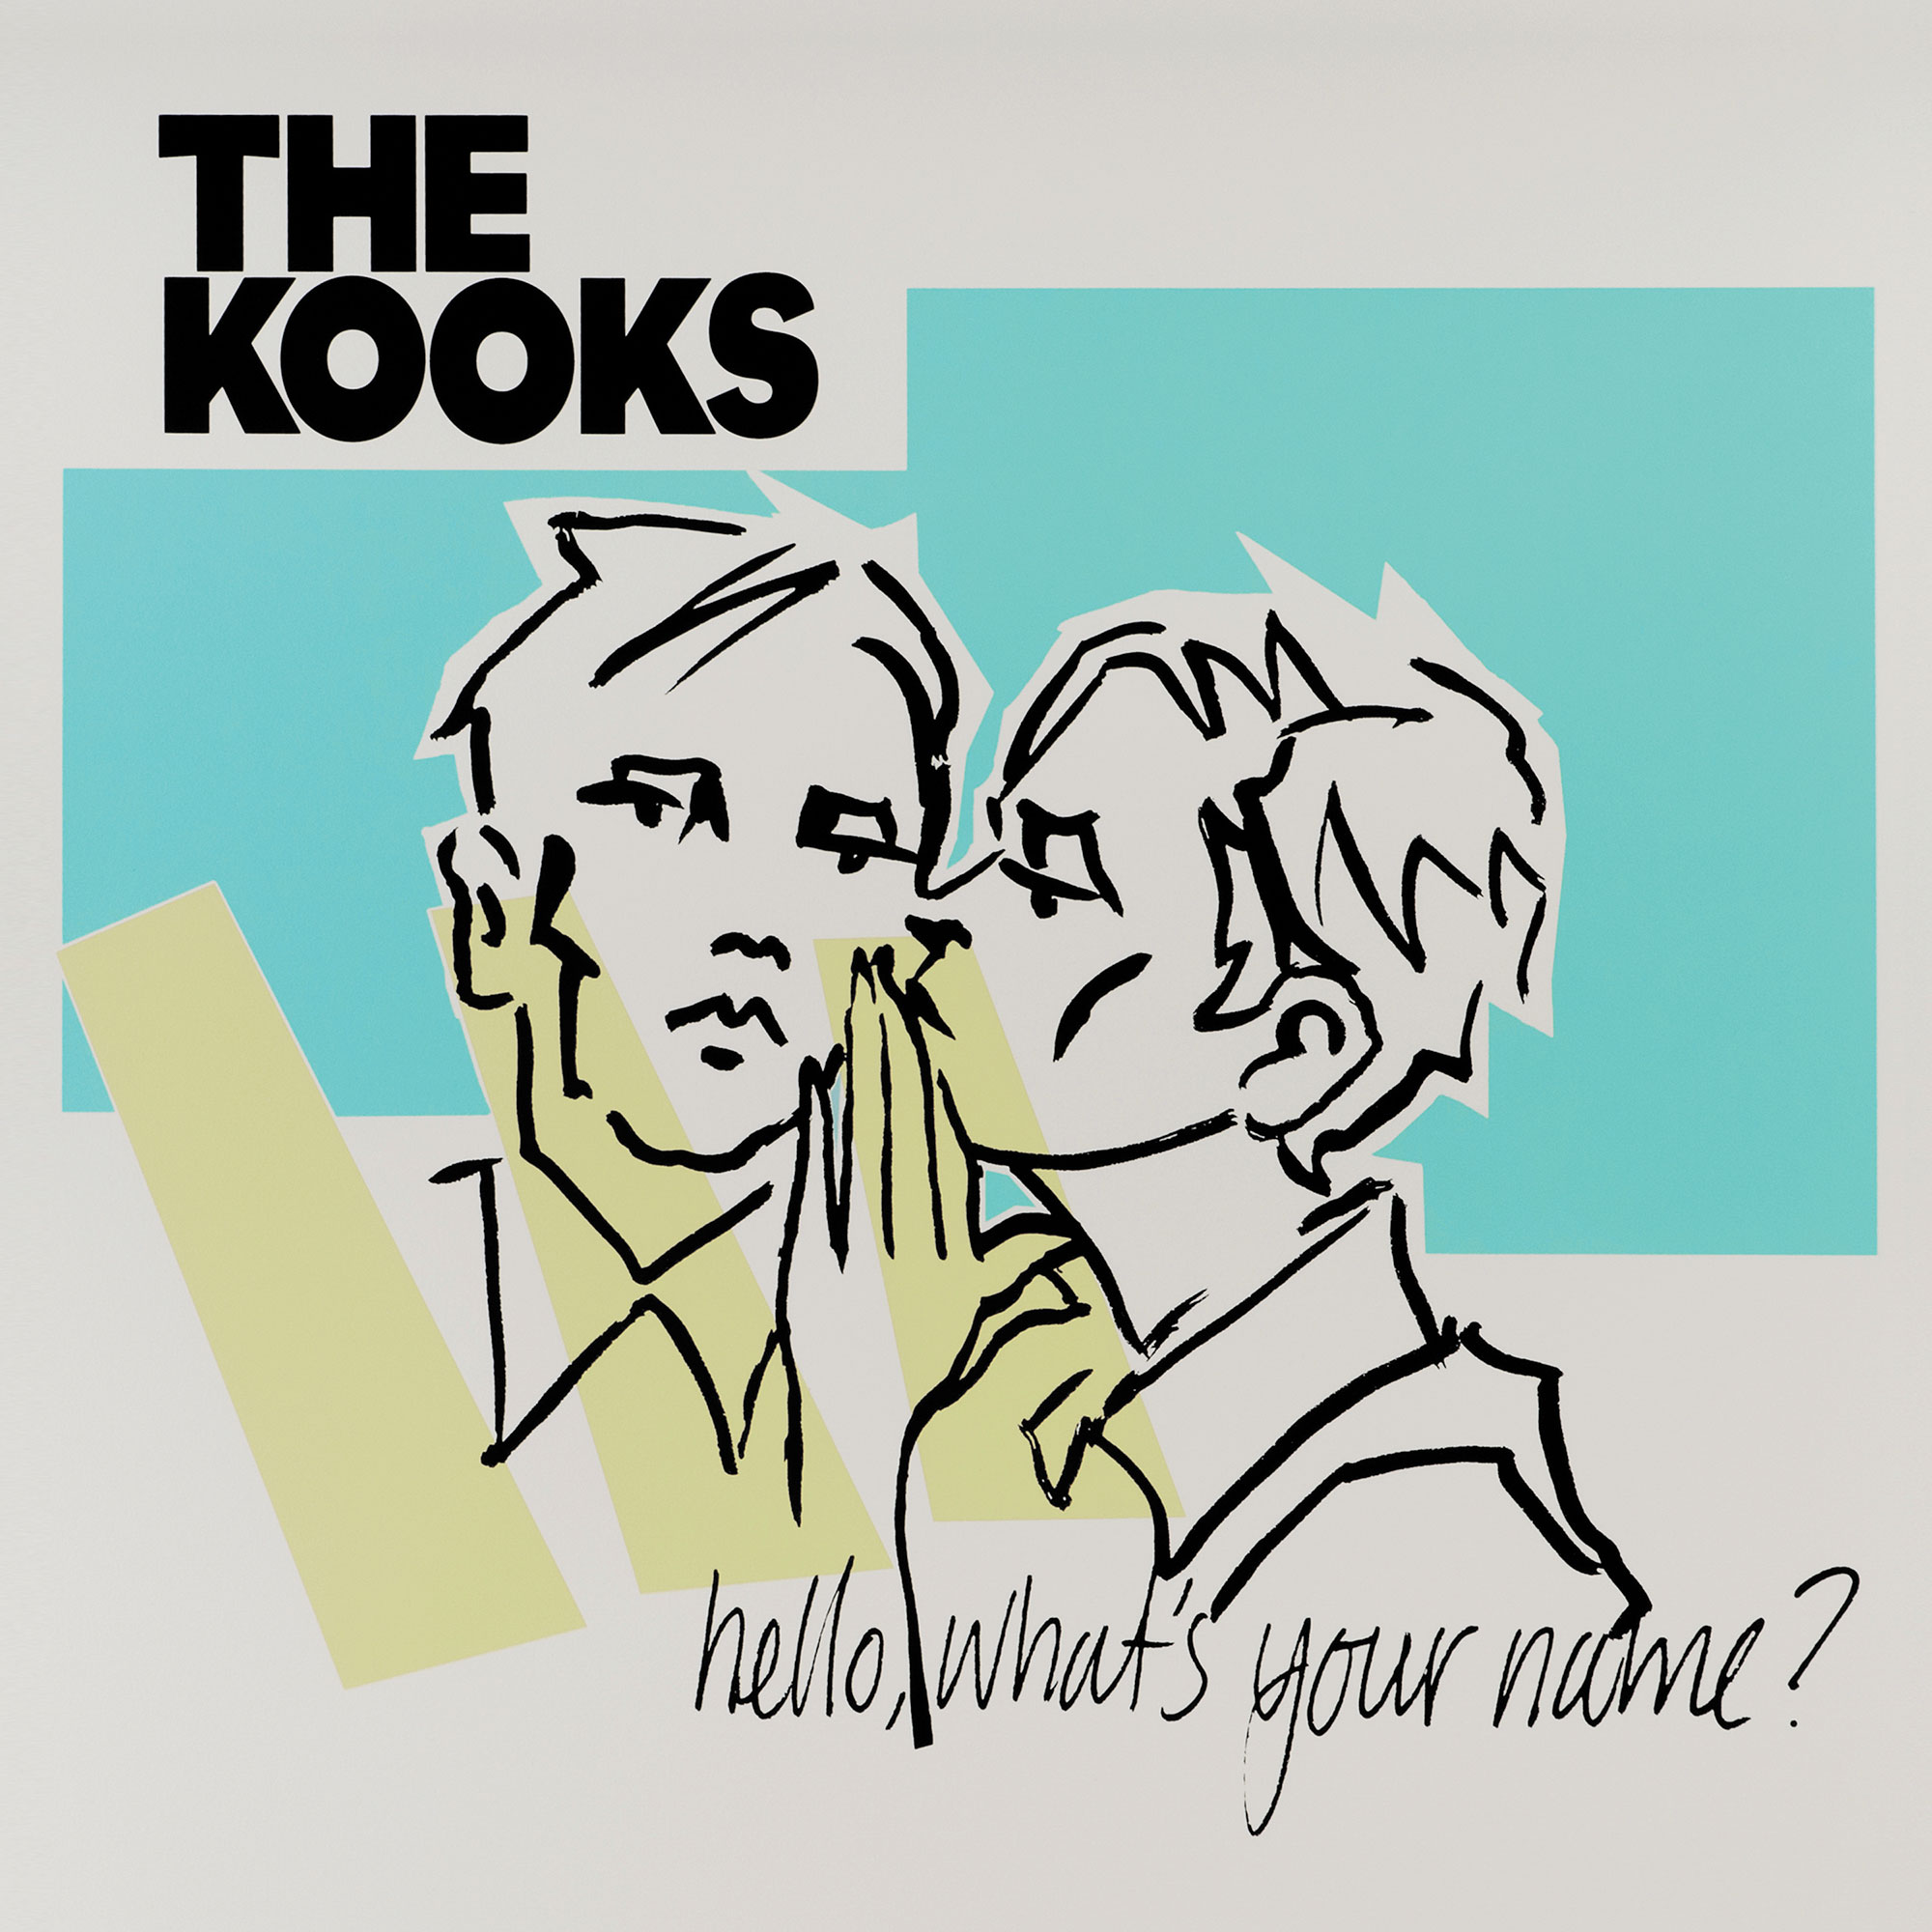 THE KOOKS: REMIXED - ALBUM REVIEW